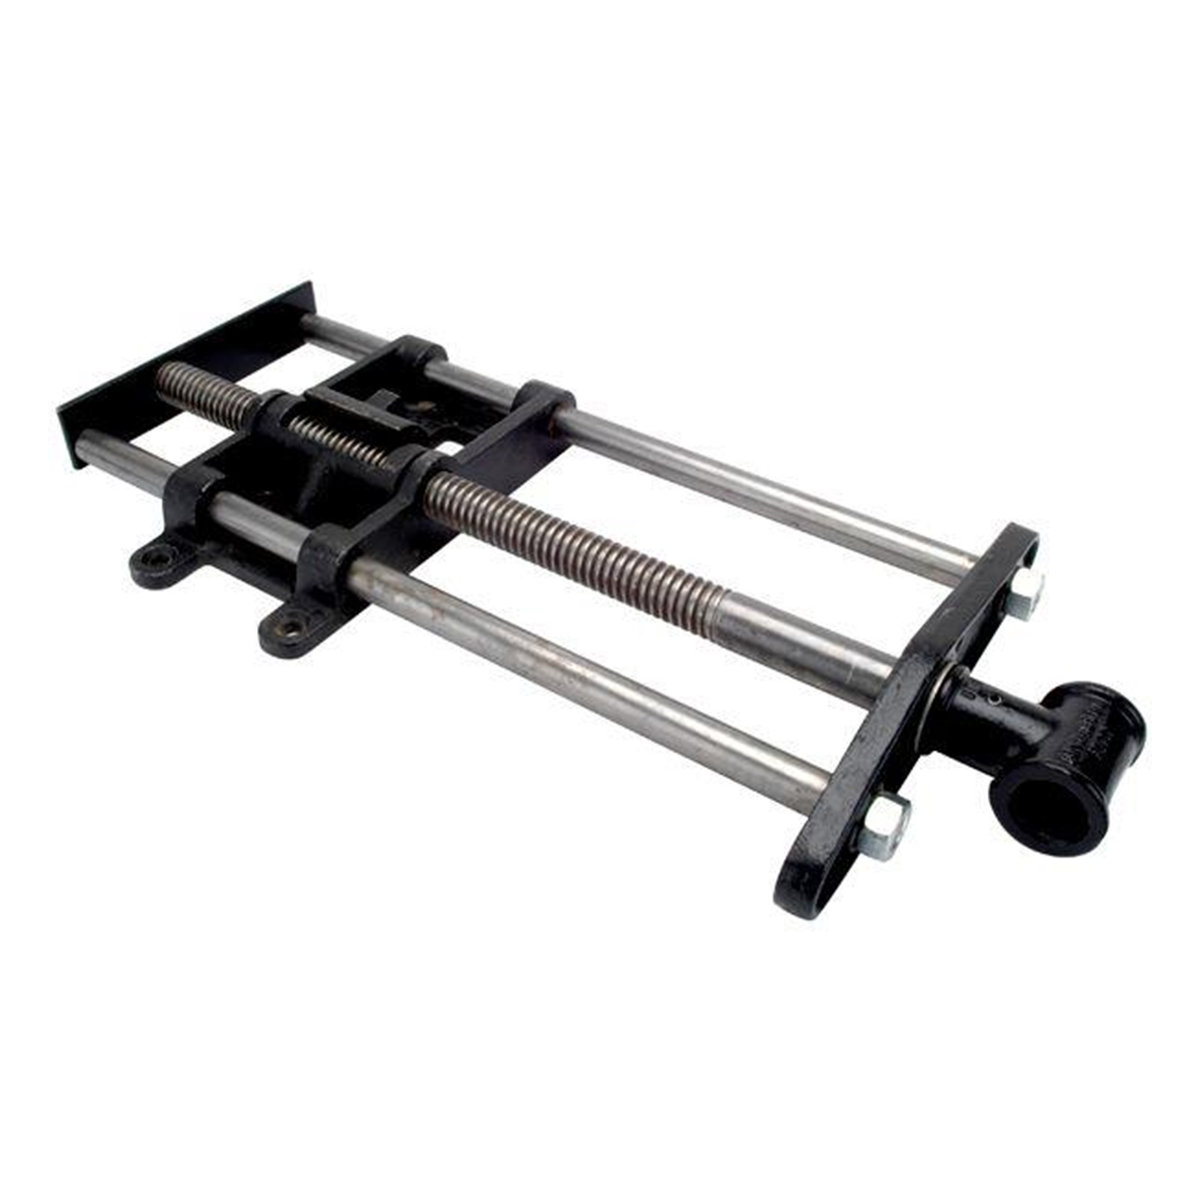 WoodRiver - Quick Release Front Vise